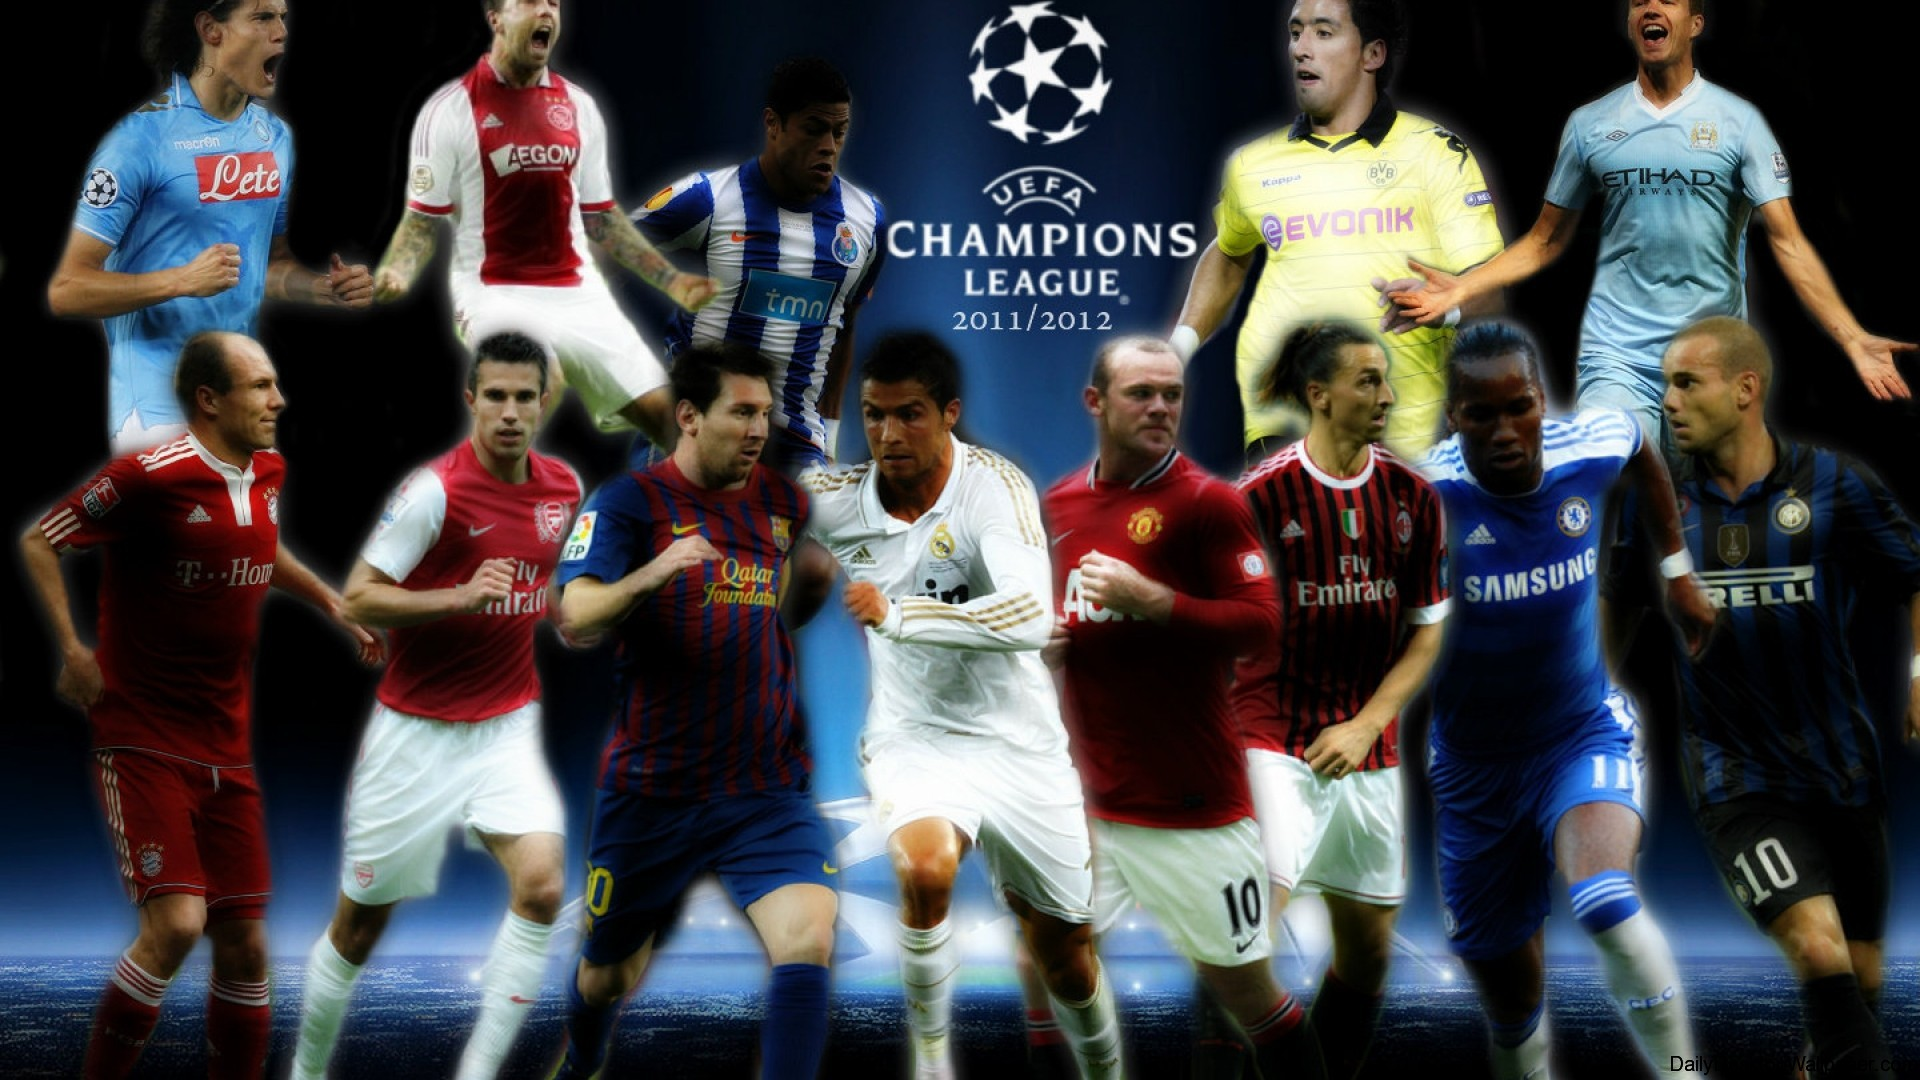 Download champions league wallpaper HD wallpaper 1920x1080